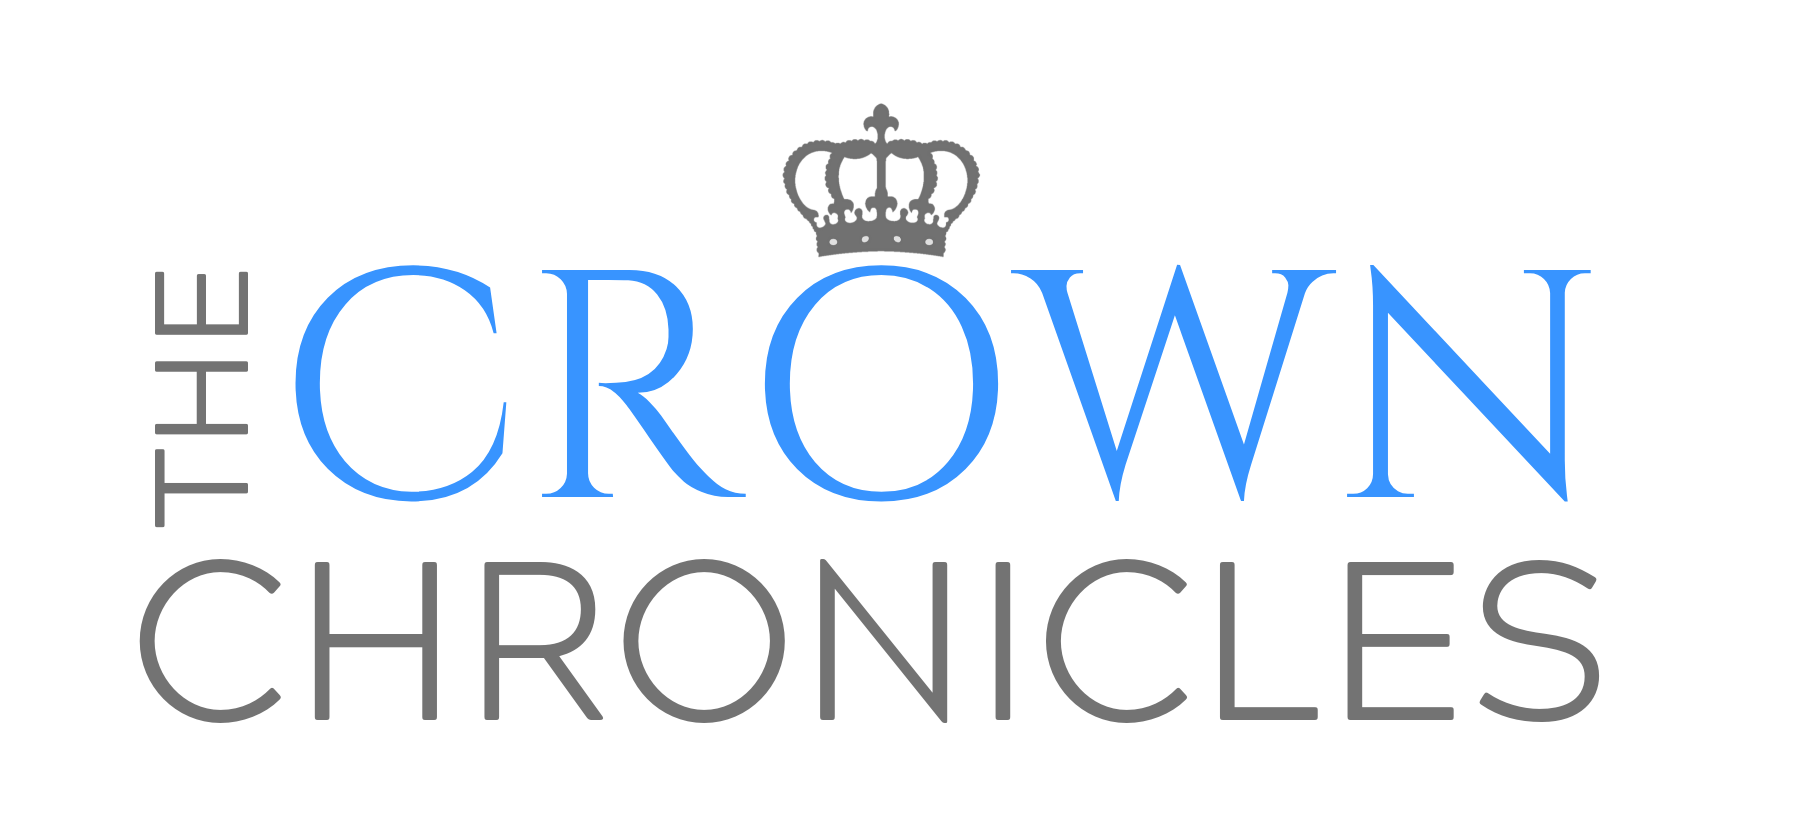 The Crown Chronicles